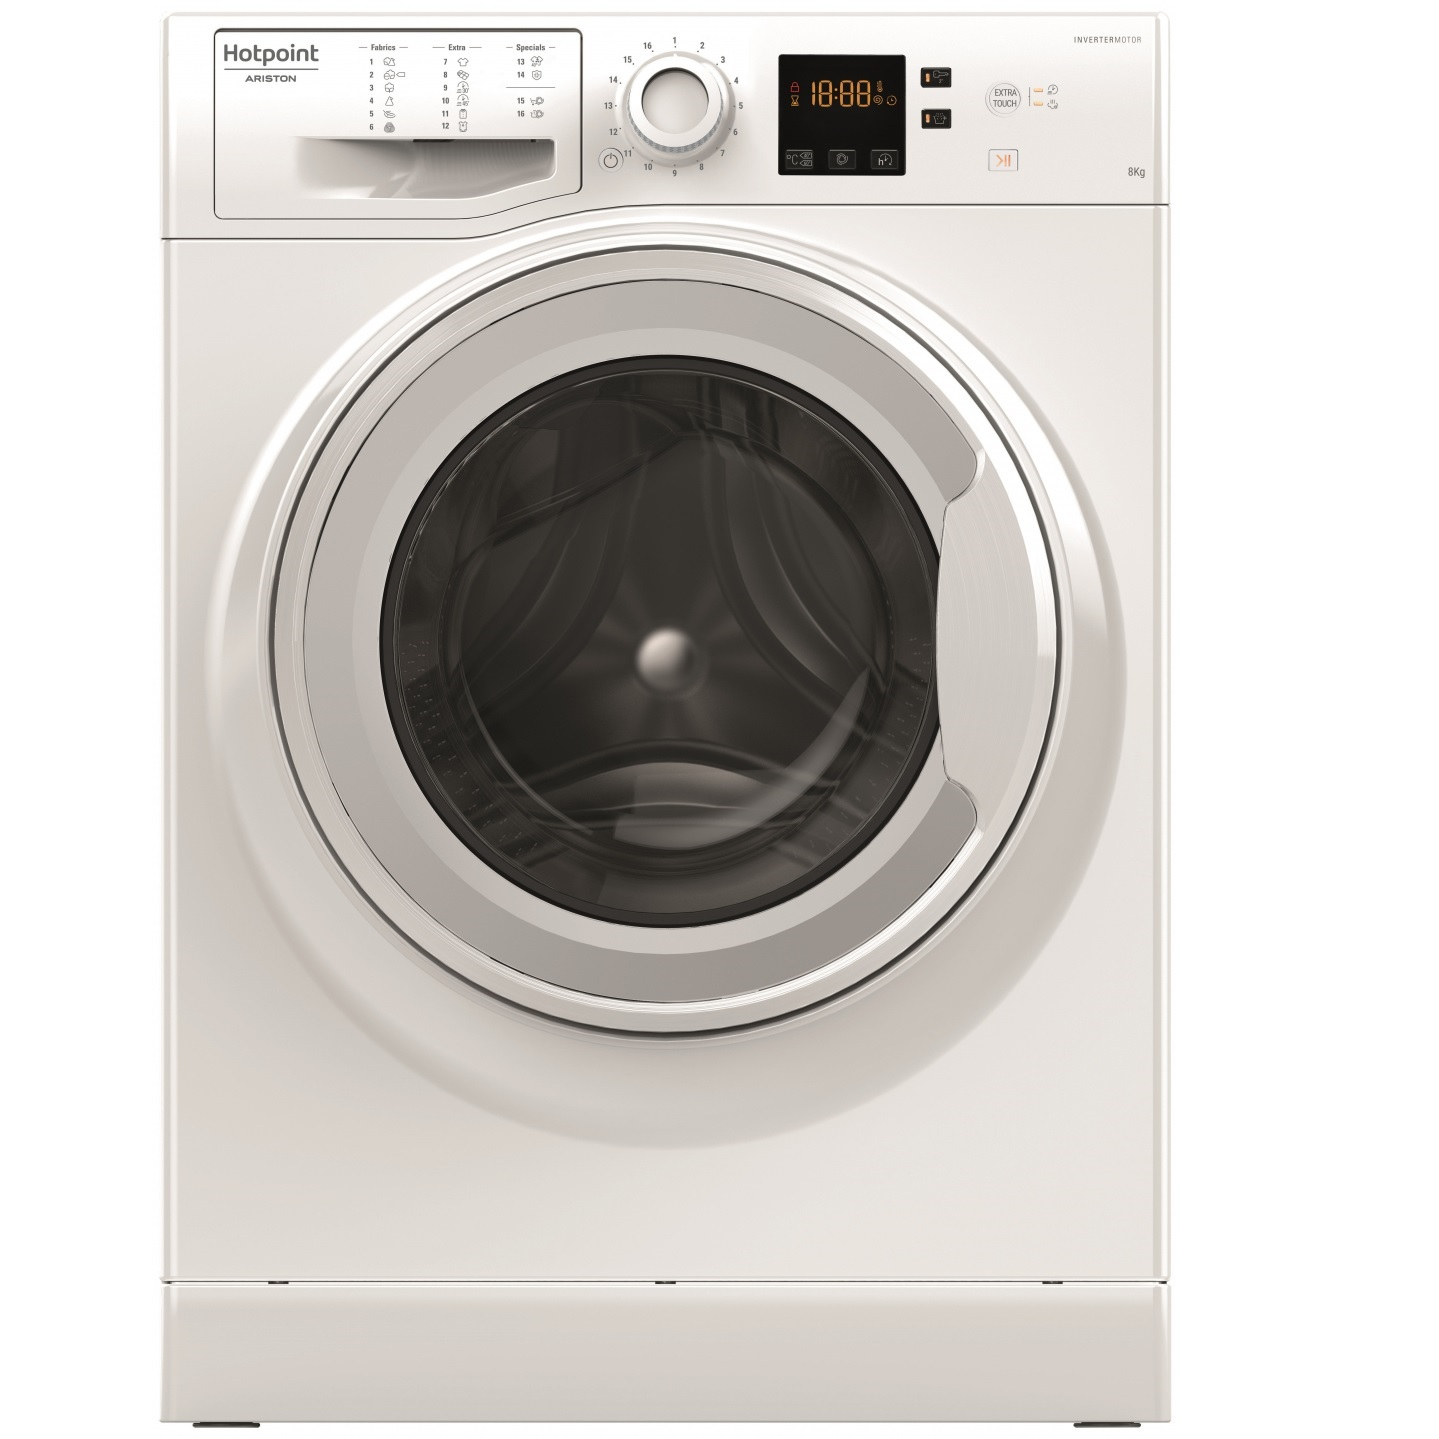 HOTPOINT ARISTON NS 823C W EU, перална машина, 8 кг, А+++